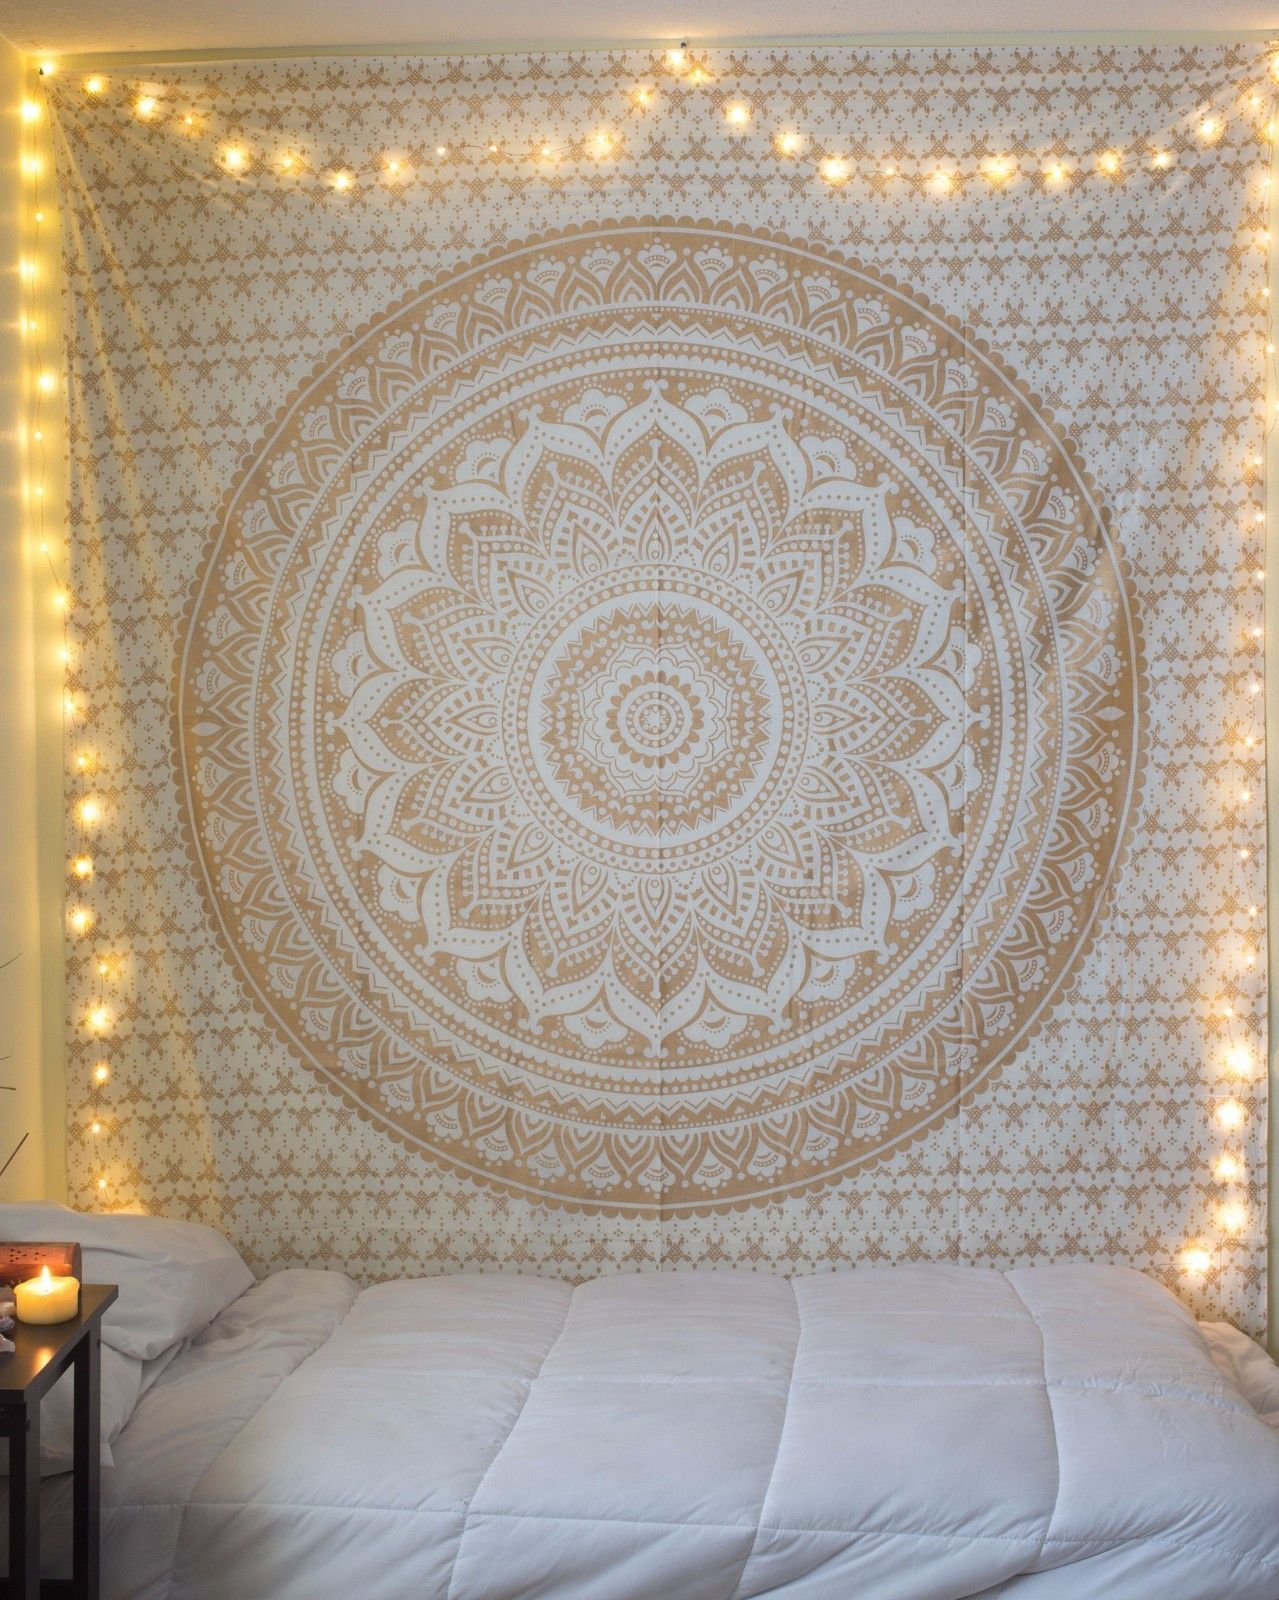 30 stylish diy tumblr room decorating ideas royal furnish - Small Golden Color Floral Trippy Ombre Medallion Mandala Wall Tapestry On Royalfurnish Com 15 85 Teen Bedroomsboho